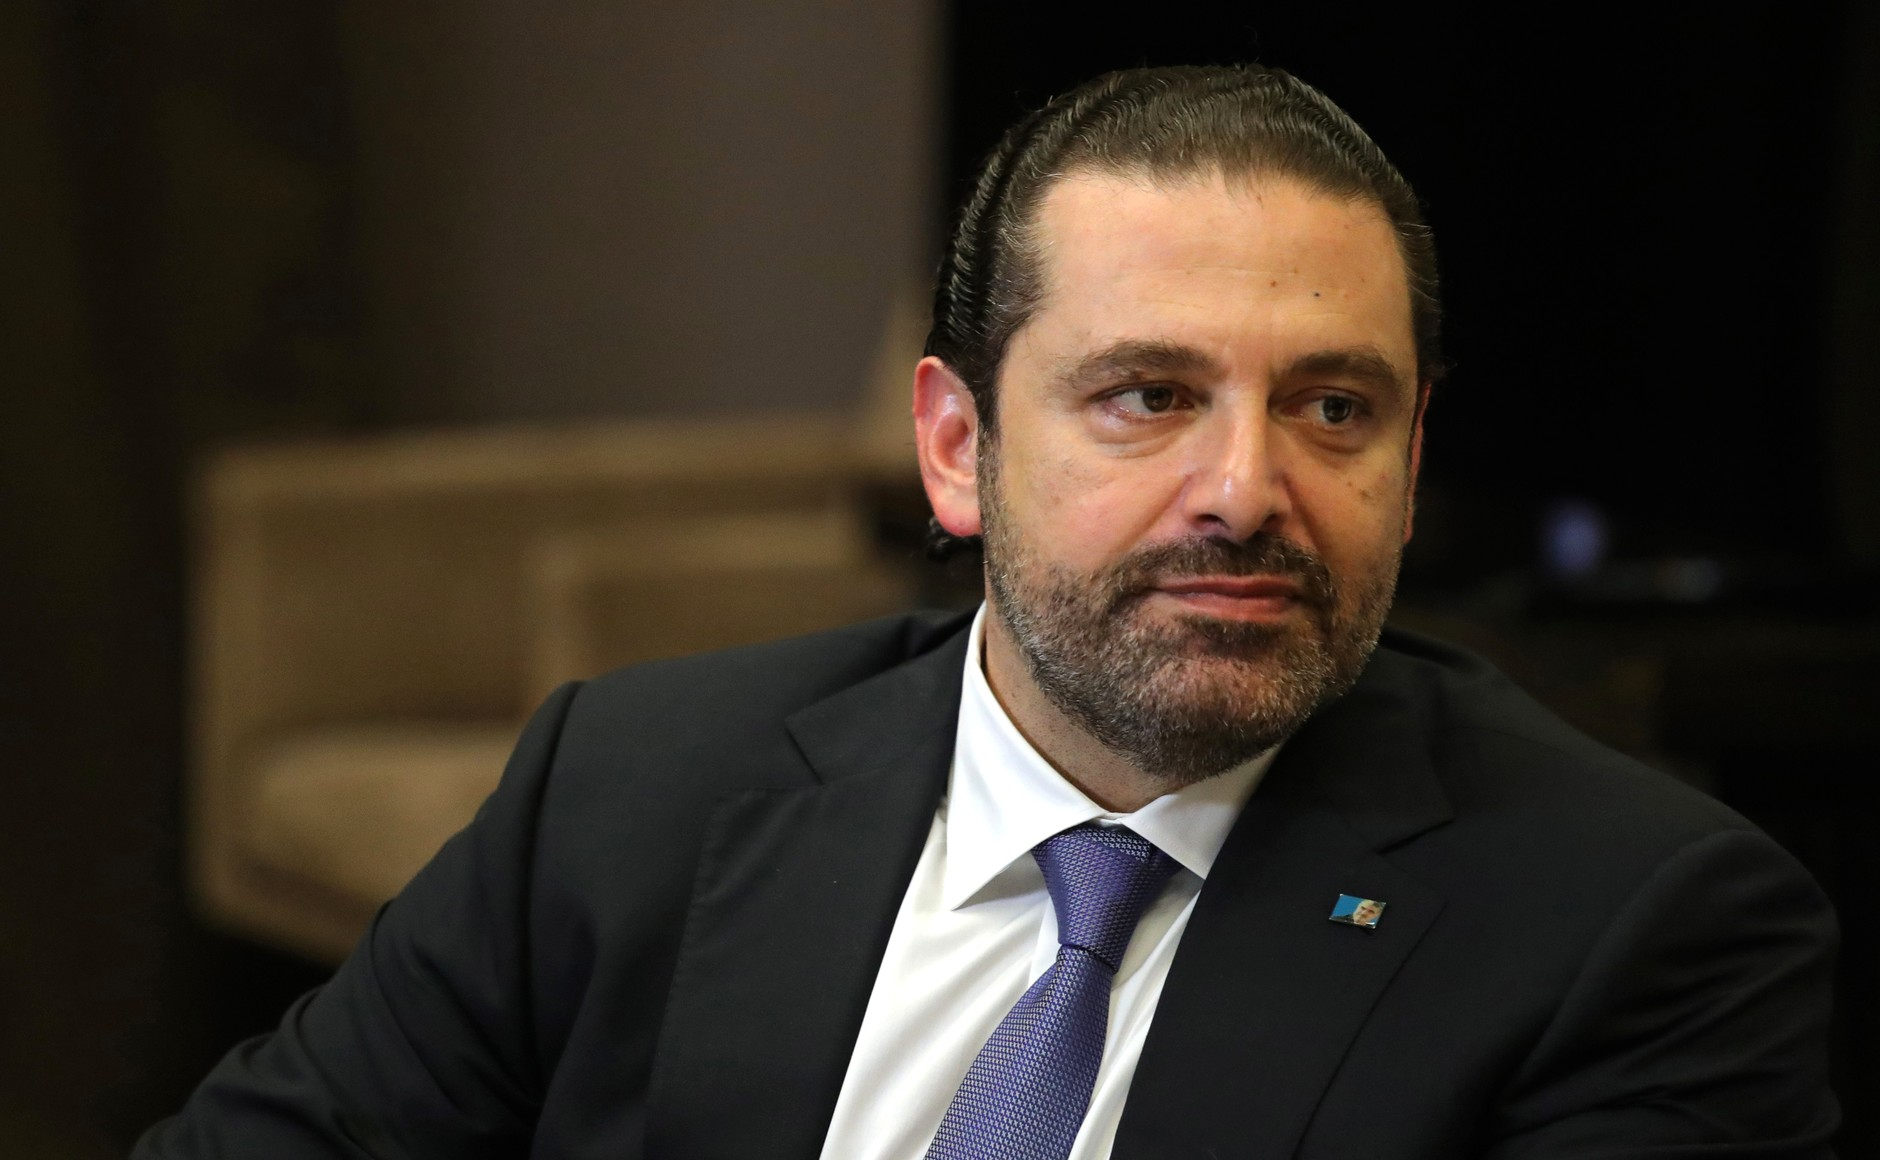 Prime Minister Saad Hariri and his political allies face accusations of corruption. (The Kremlin)